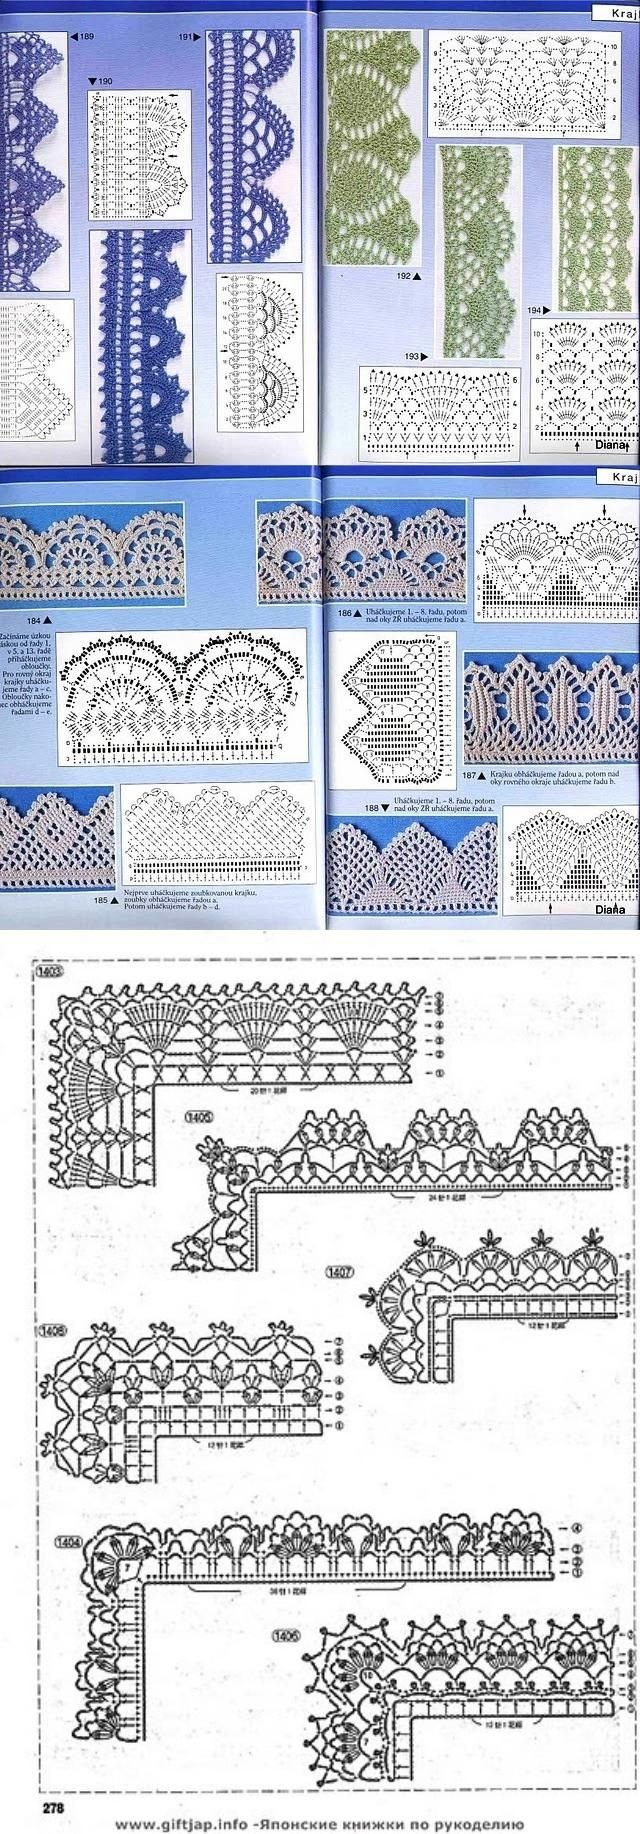 Crochet Patterns Diagram : ... Crochet Edging Diagram, Crochet Edging Pattern Free, Crochet Diagram